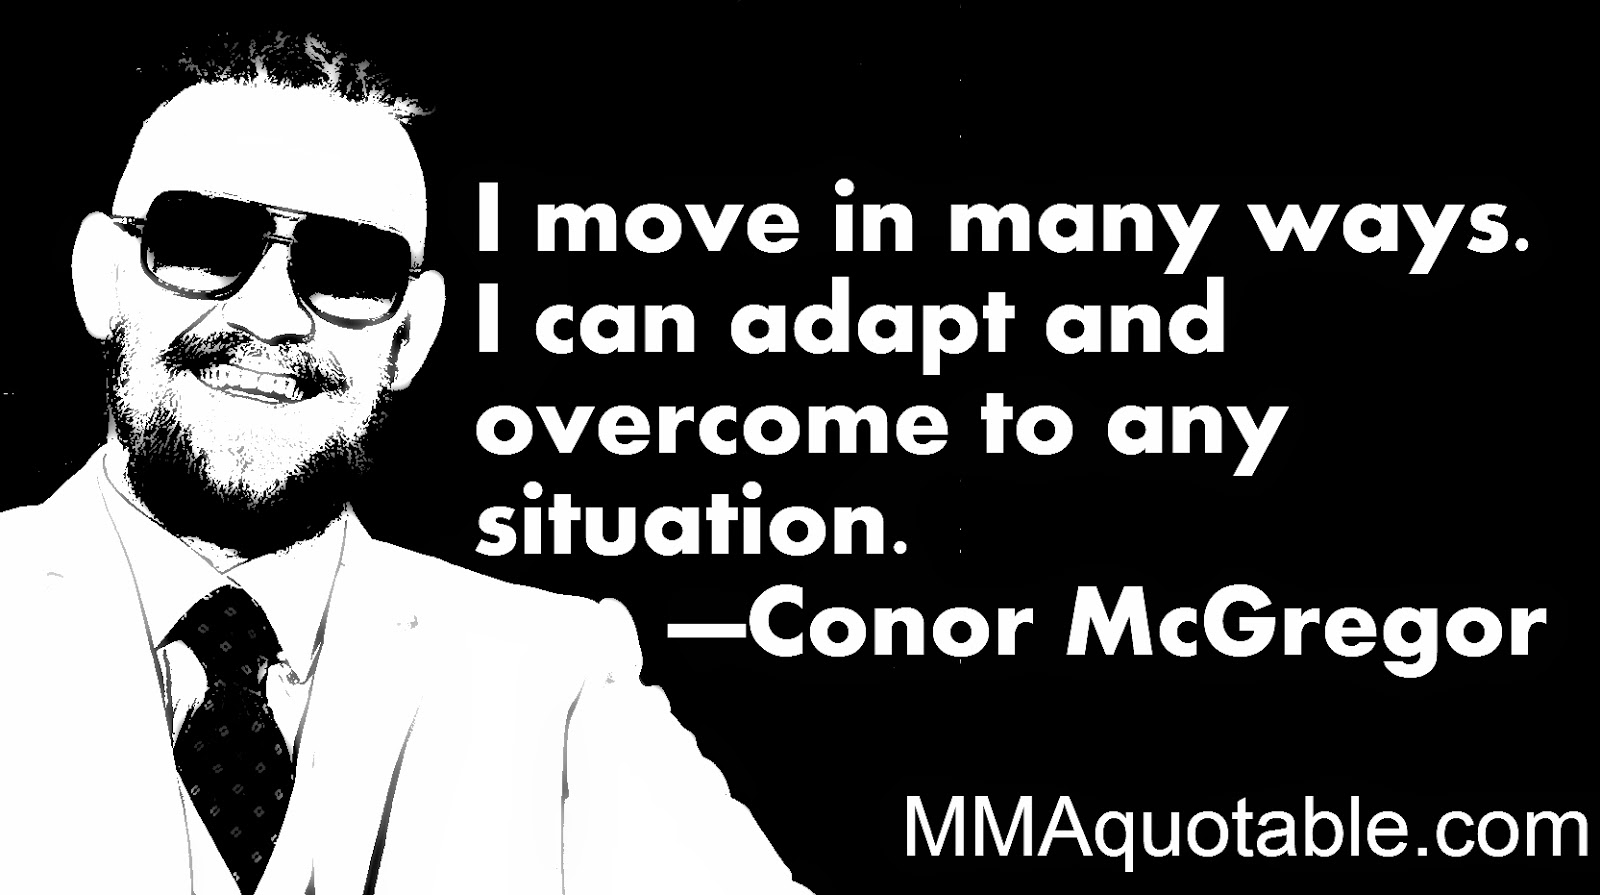 Mma Quotes Motivational Quotes With Pictures Many Mma & Ufc I Move In Many .